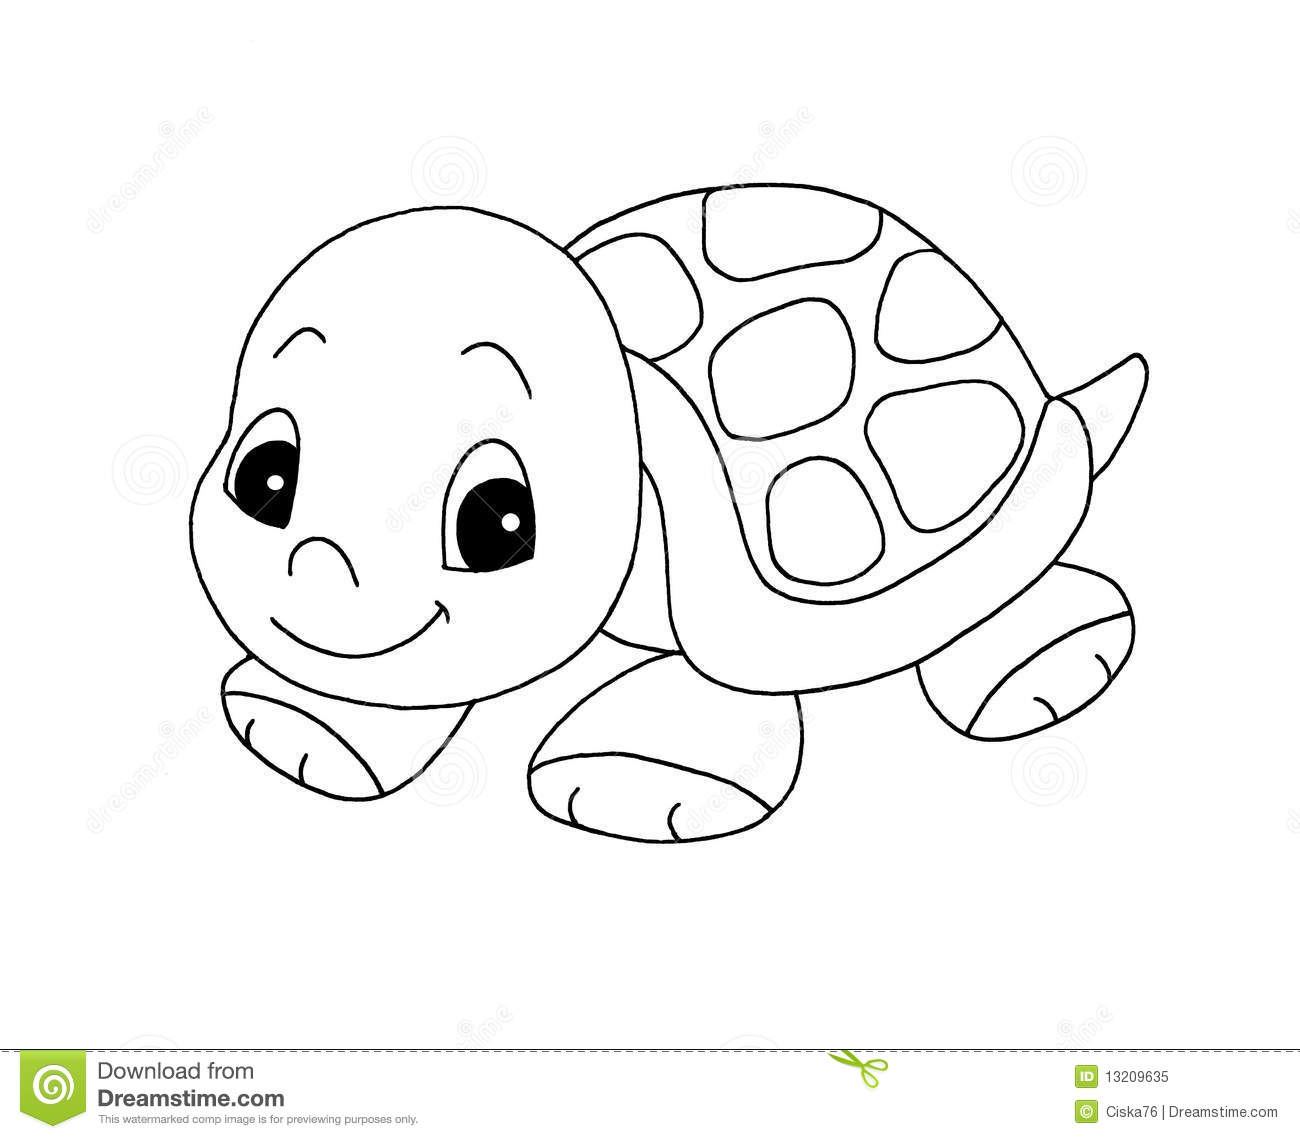 Easy cute turtle drawings - photo#15